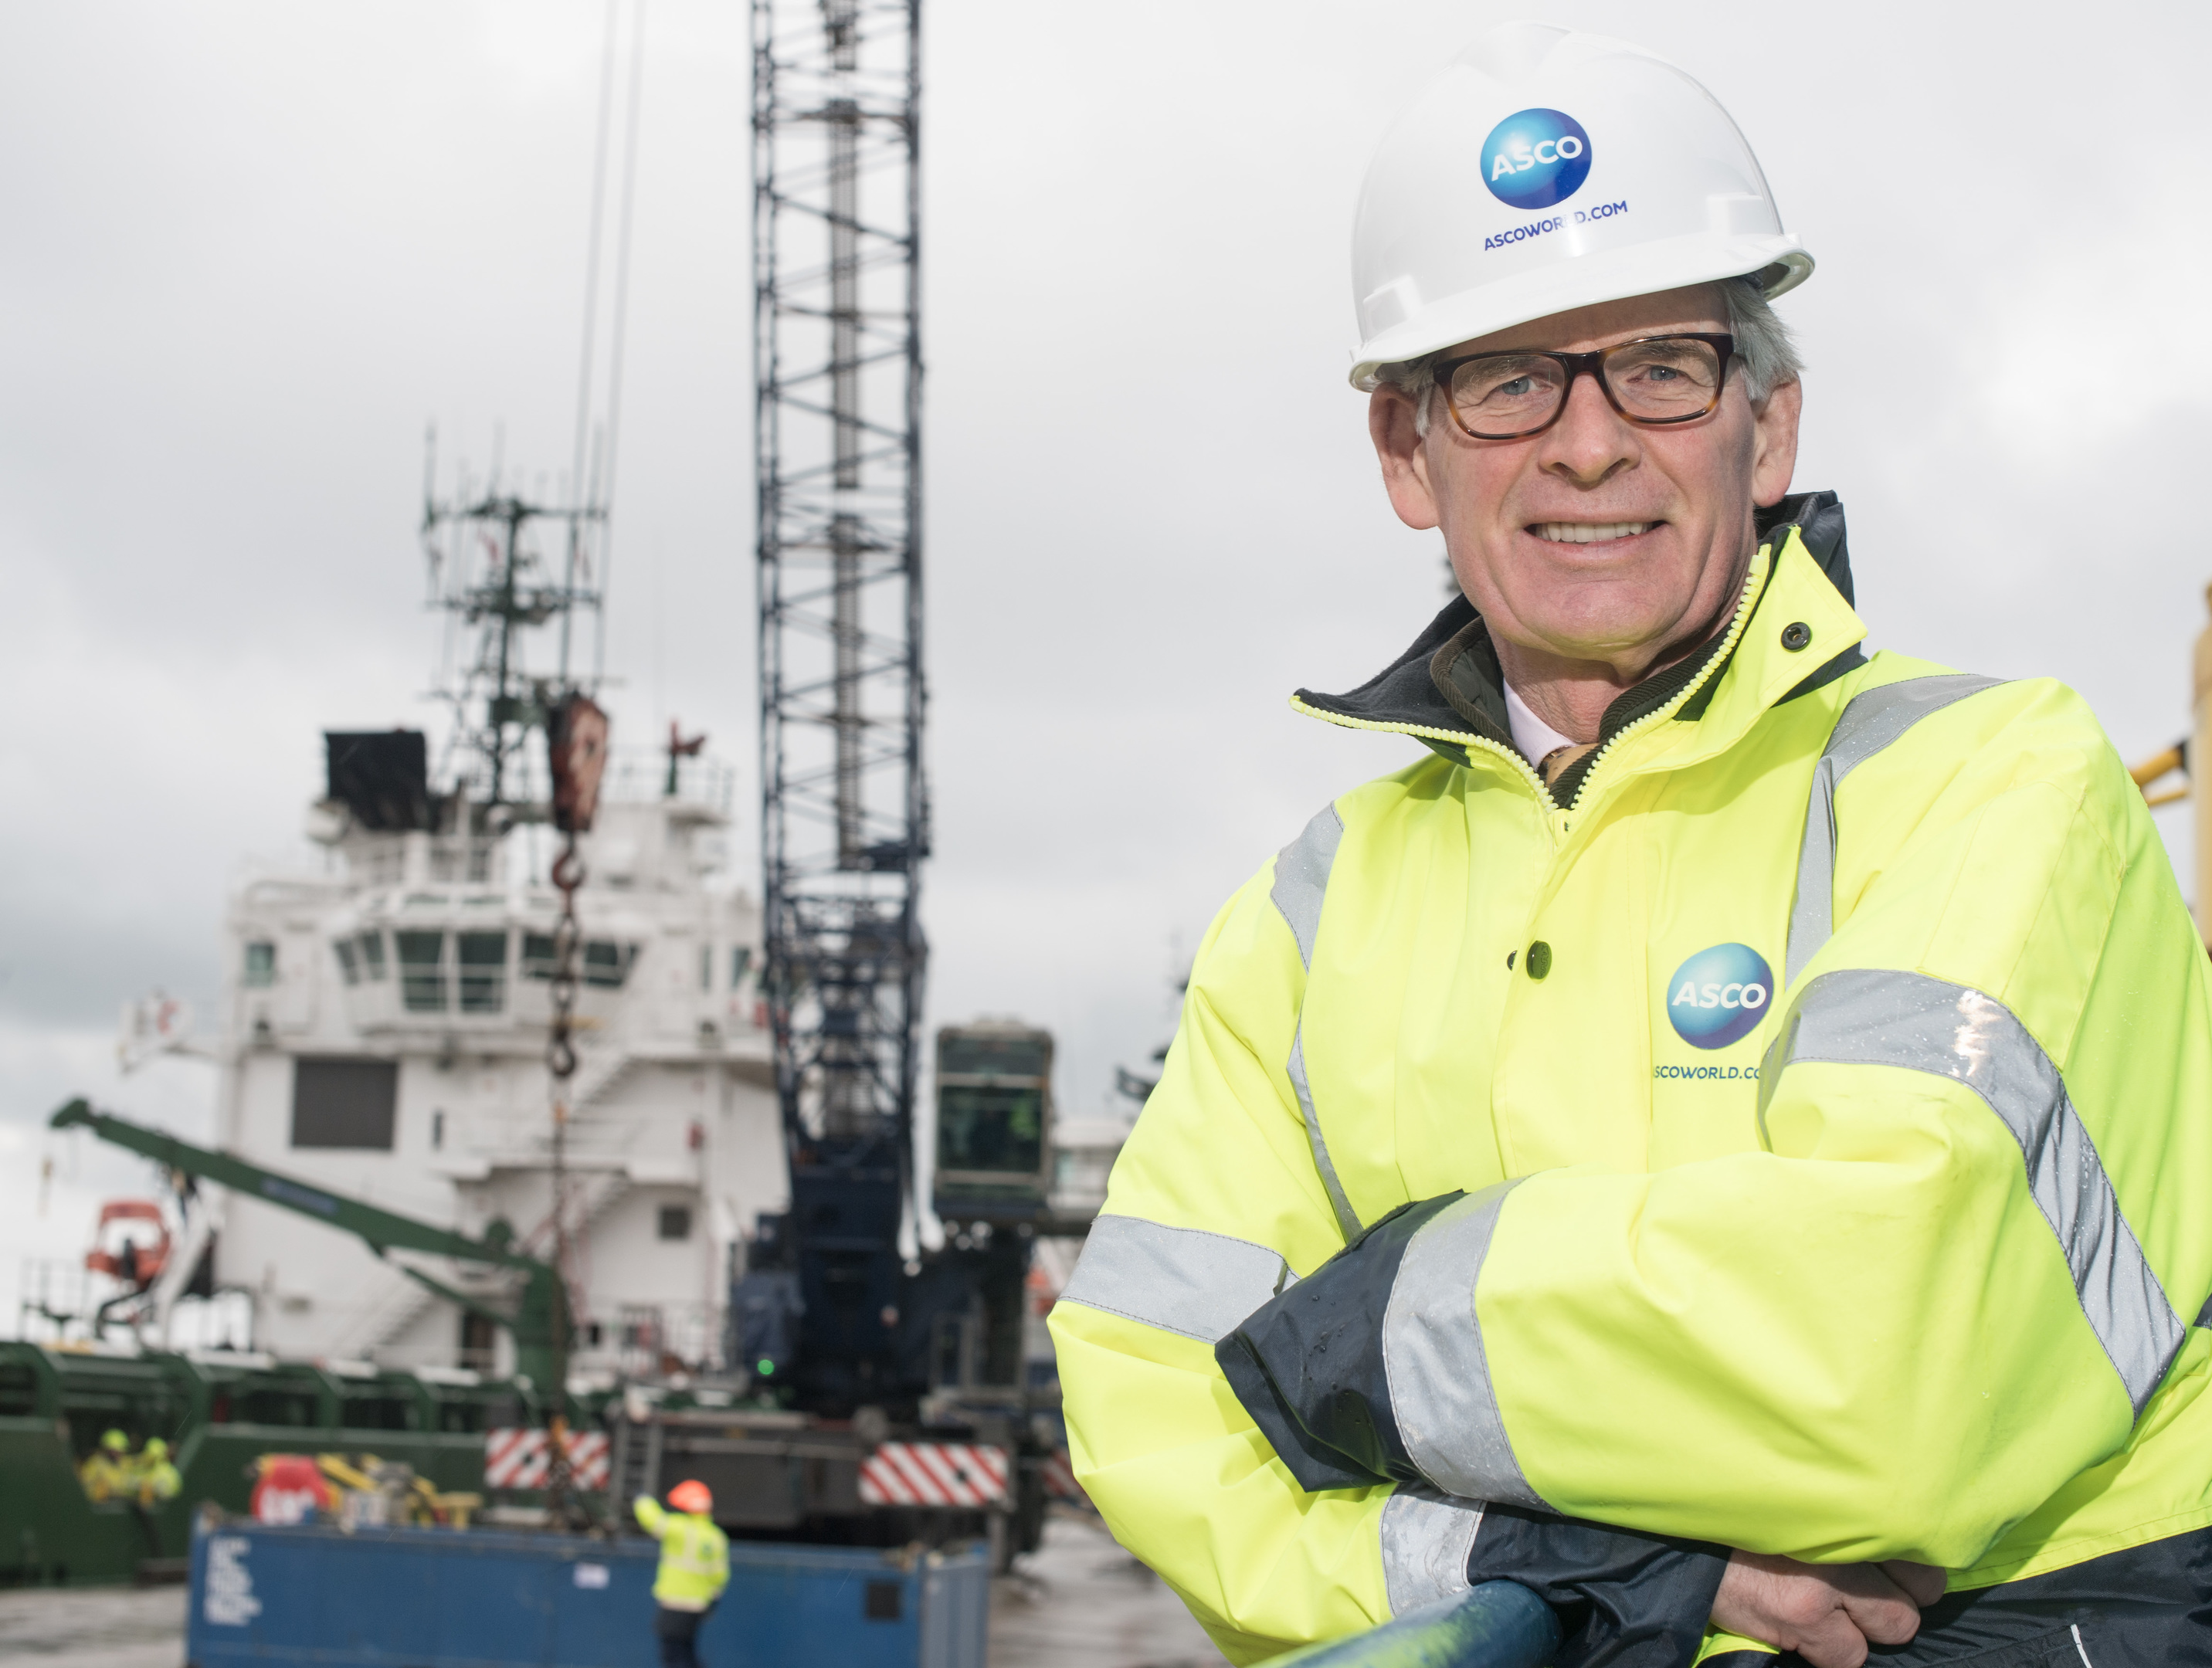 Alan Brown, group CEO at ASCO   Pictured is Alan Brown, CEO of ASCO at Peterhead South Base.  Picture by Michal Wachucik / Abermedia